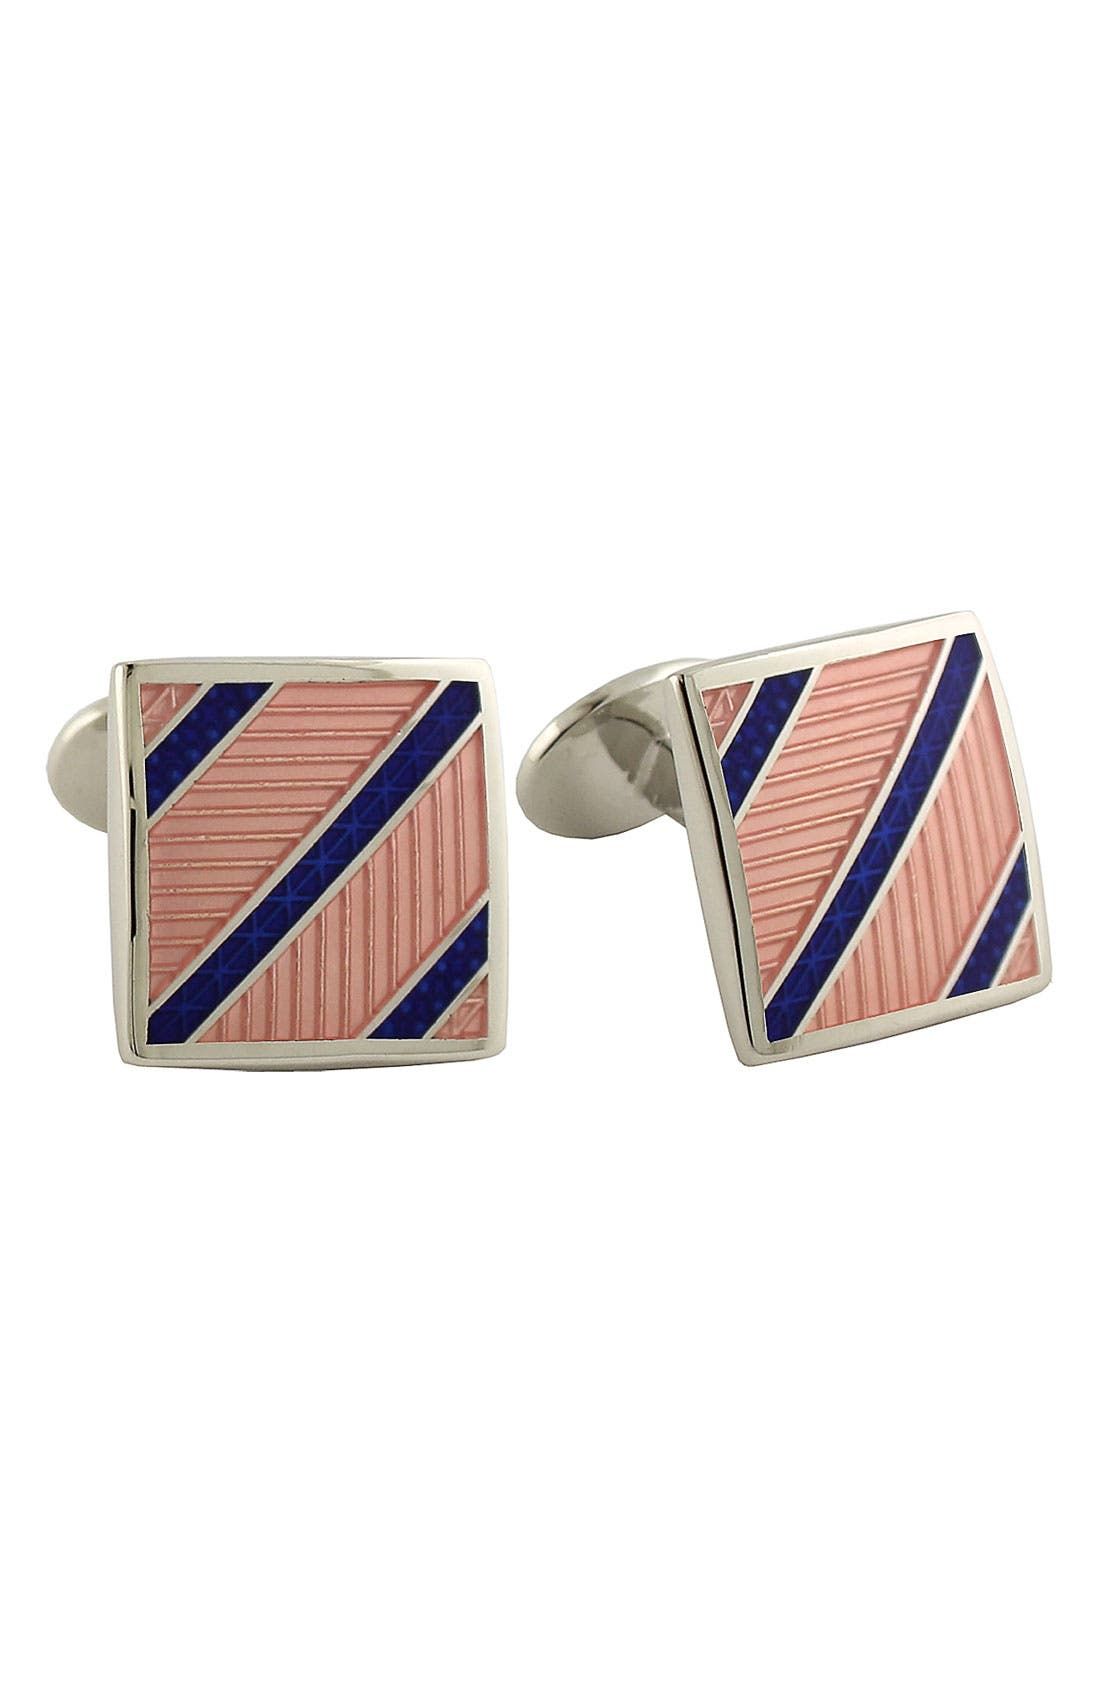 David Donahue 'Diagonal Stripe' Cuff Links